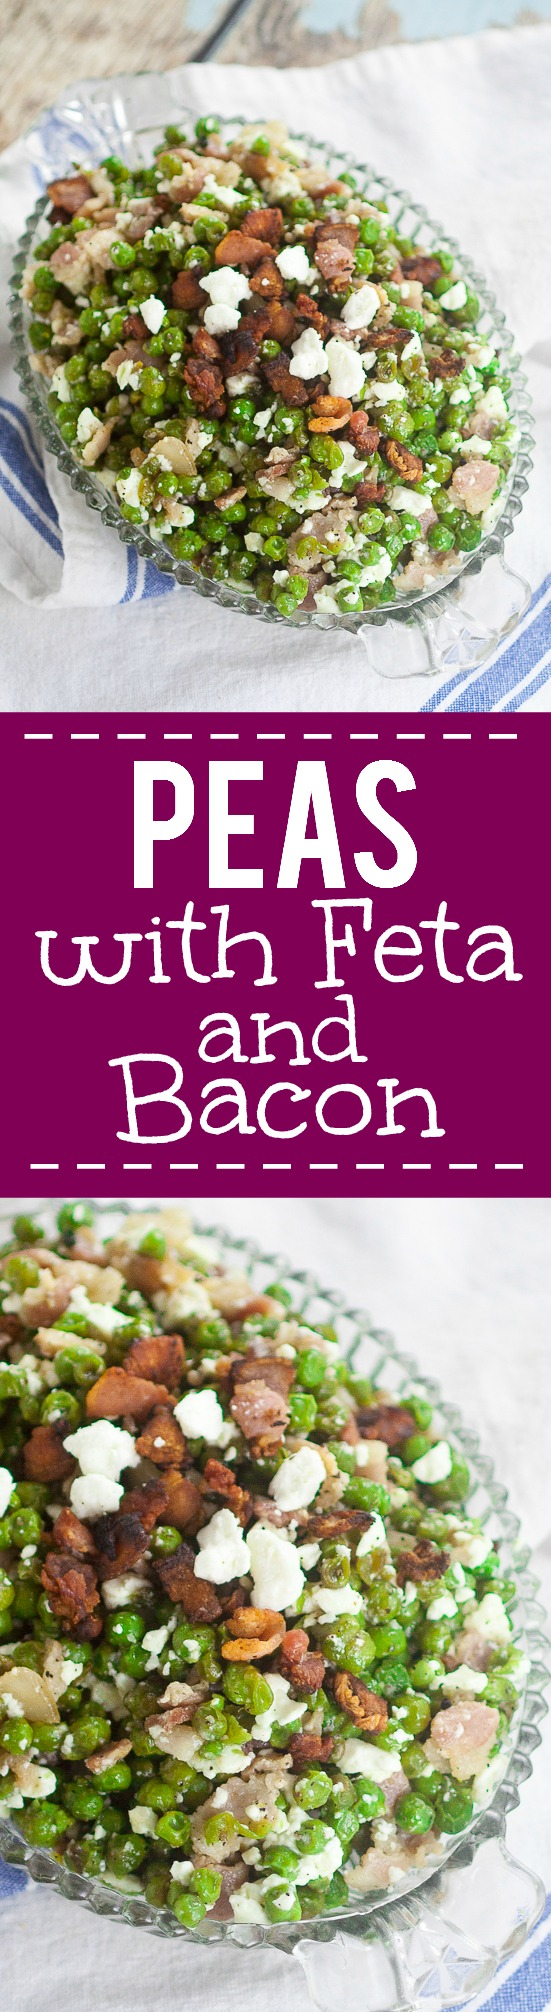 Feta Bacon Peas Recipe - Peas cooked with salty crunchy bacon then tossed with tangy, creamy Feta cheese for a delightful, unique side dish. Make this Feta Bacon Peas quick and easy side dish recipe in just 20 minutes!